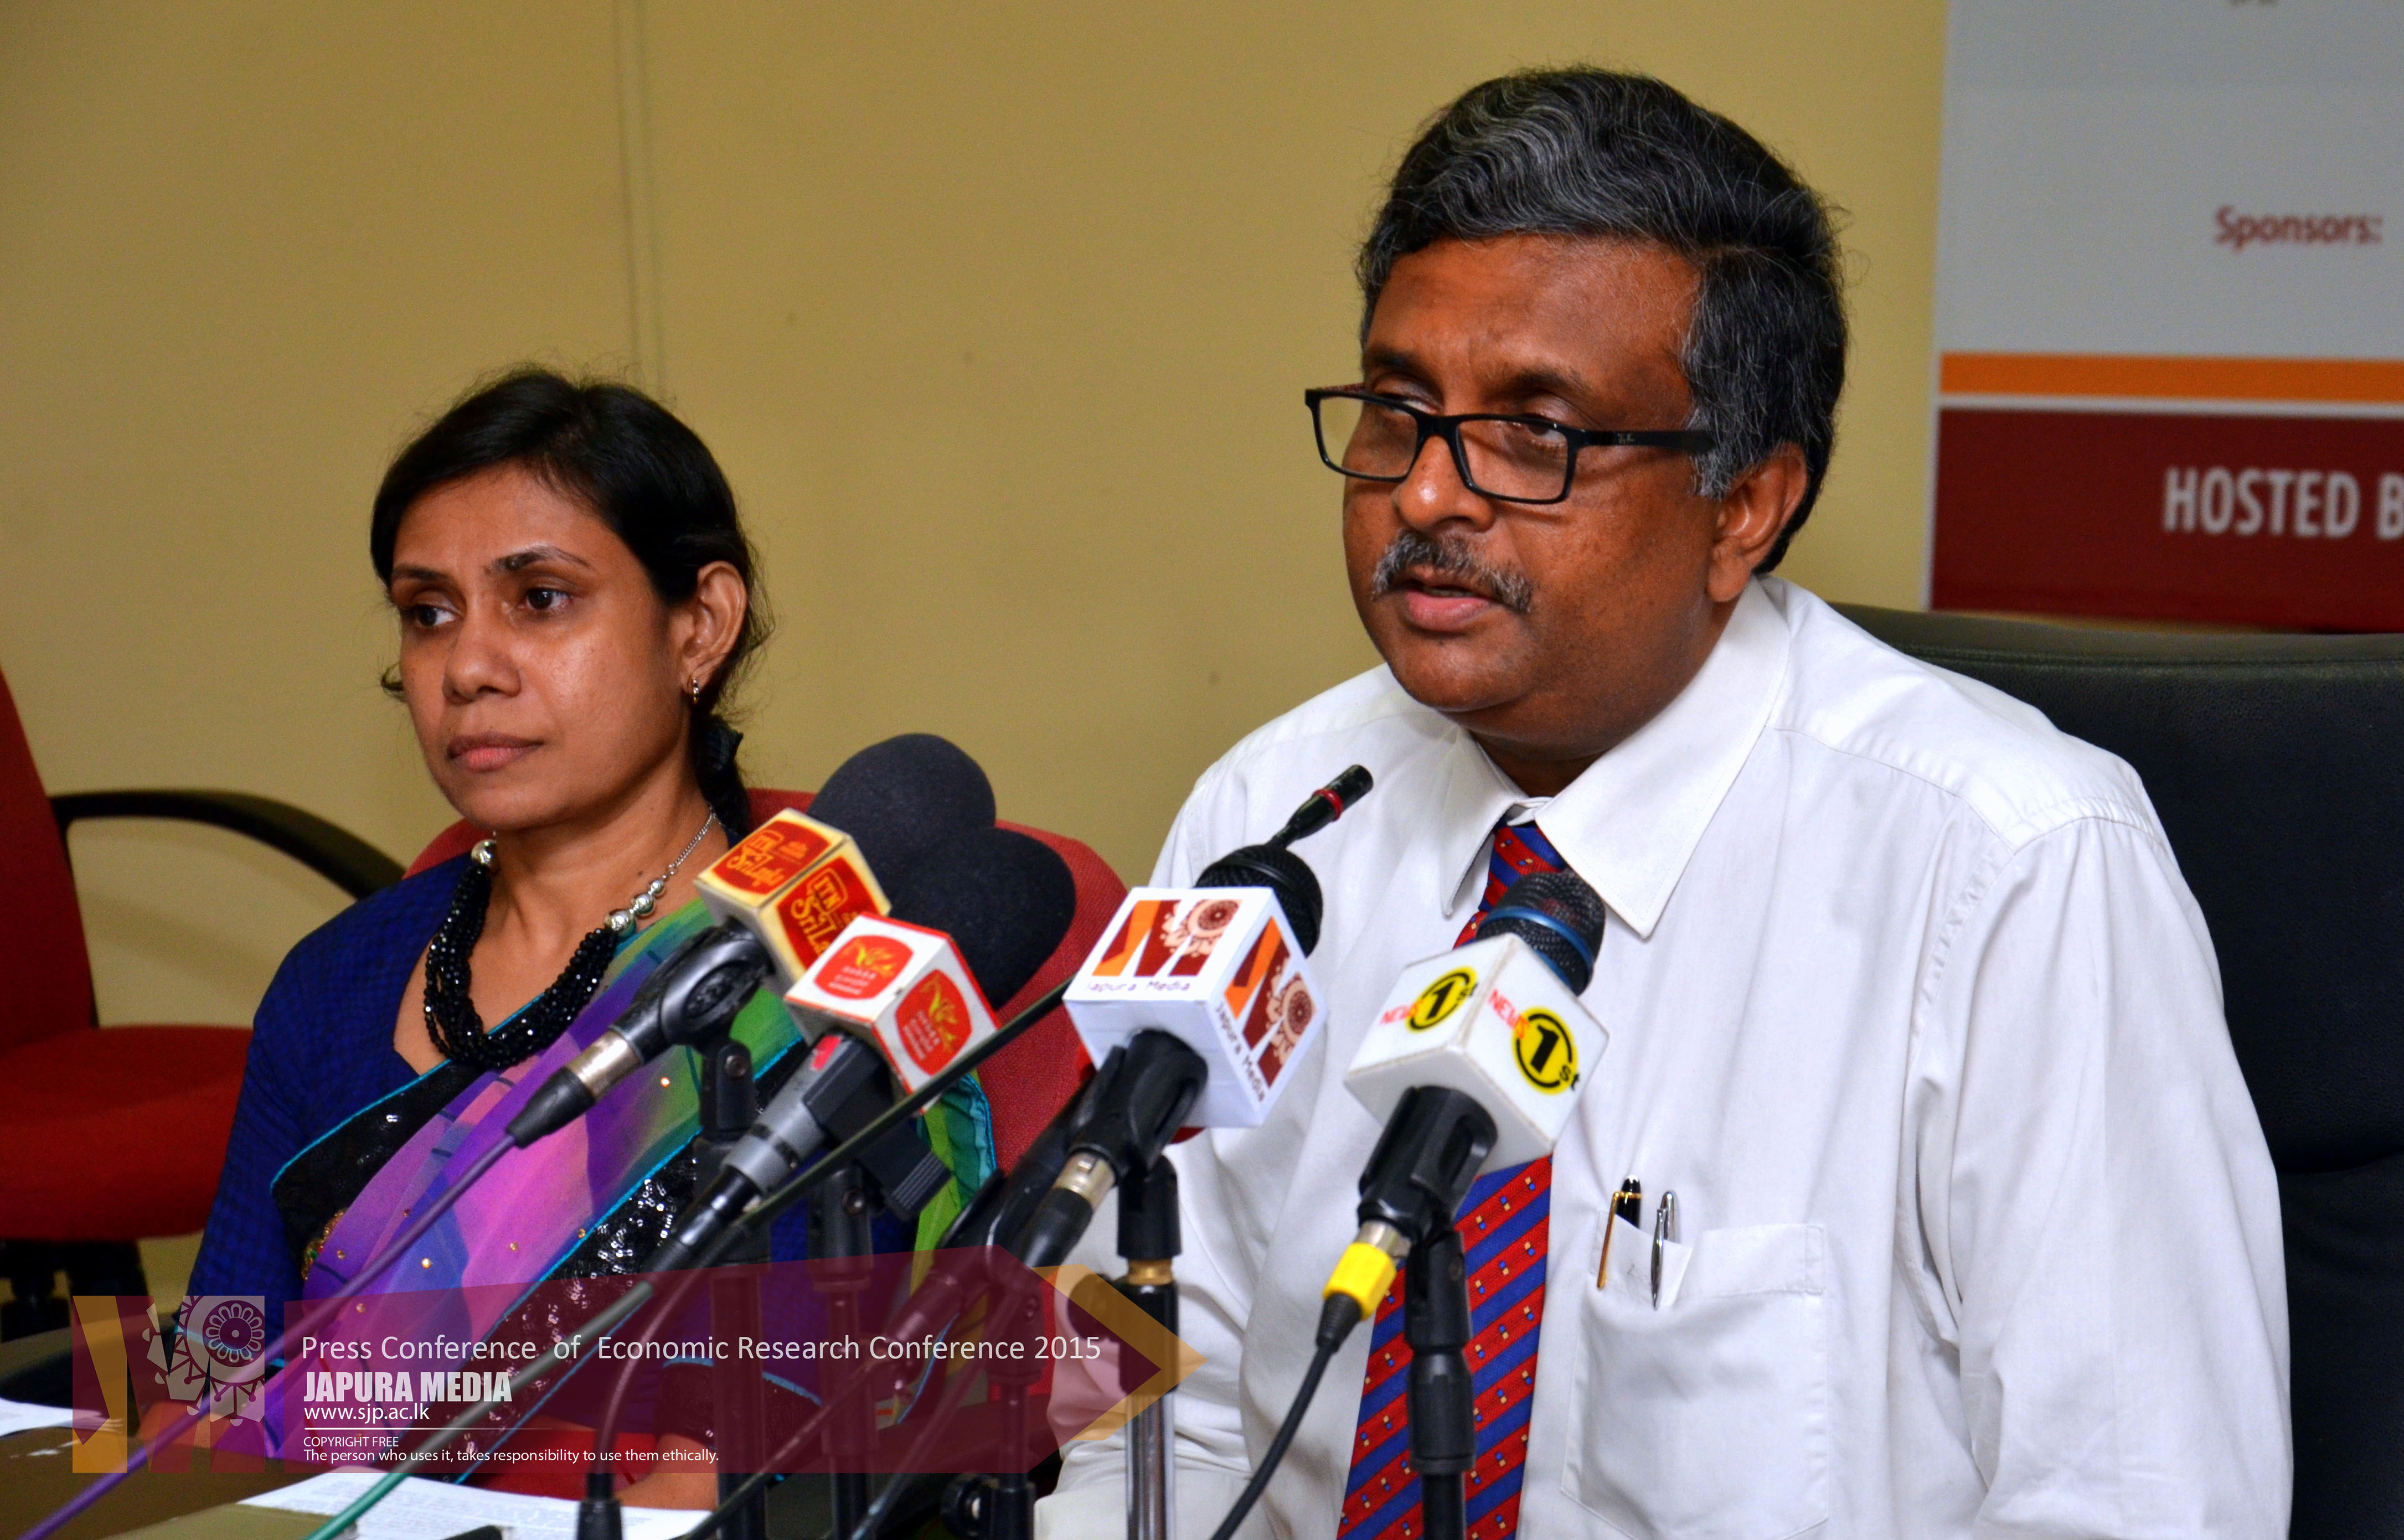 press conference of 4th international conference of Sri Lanka forum (1)